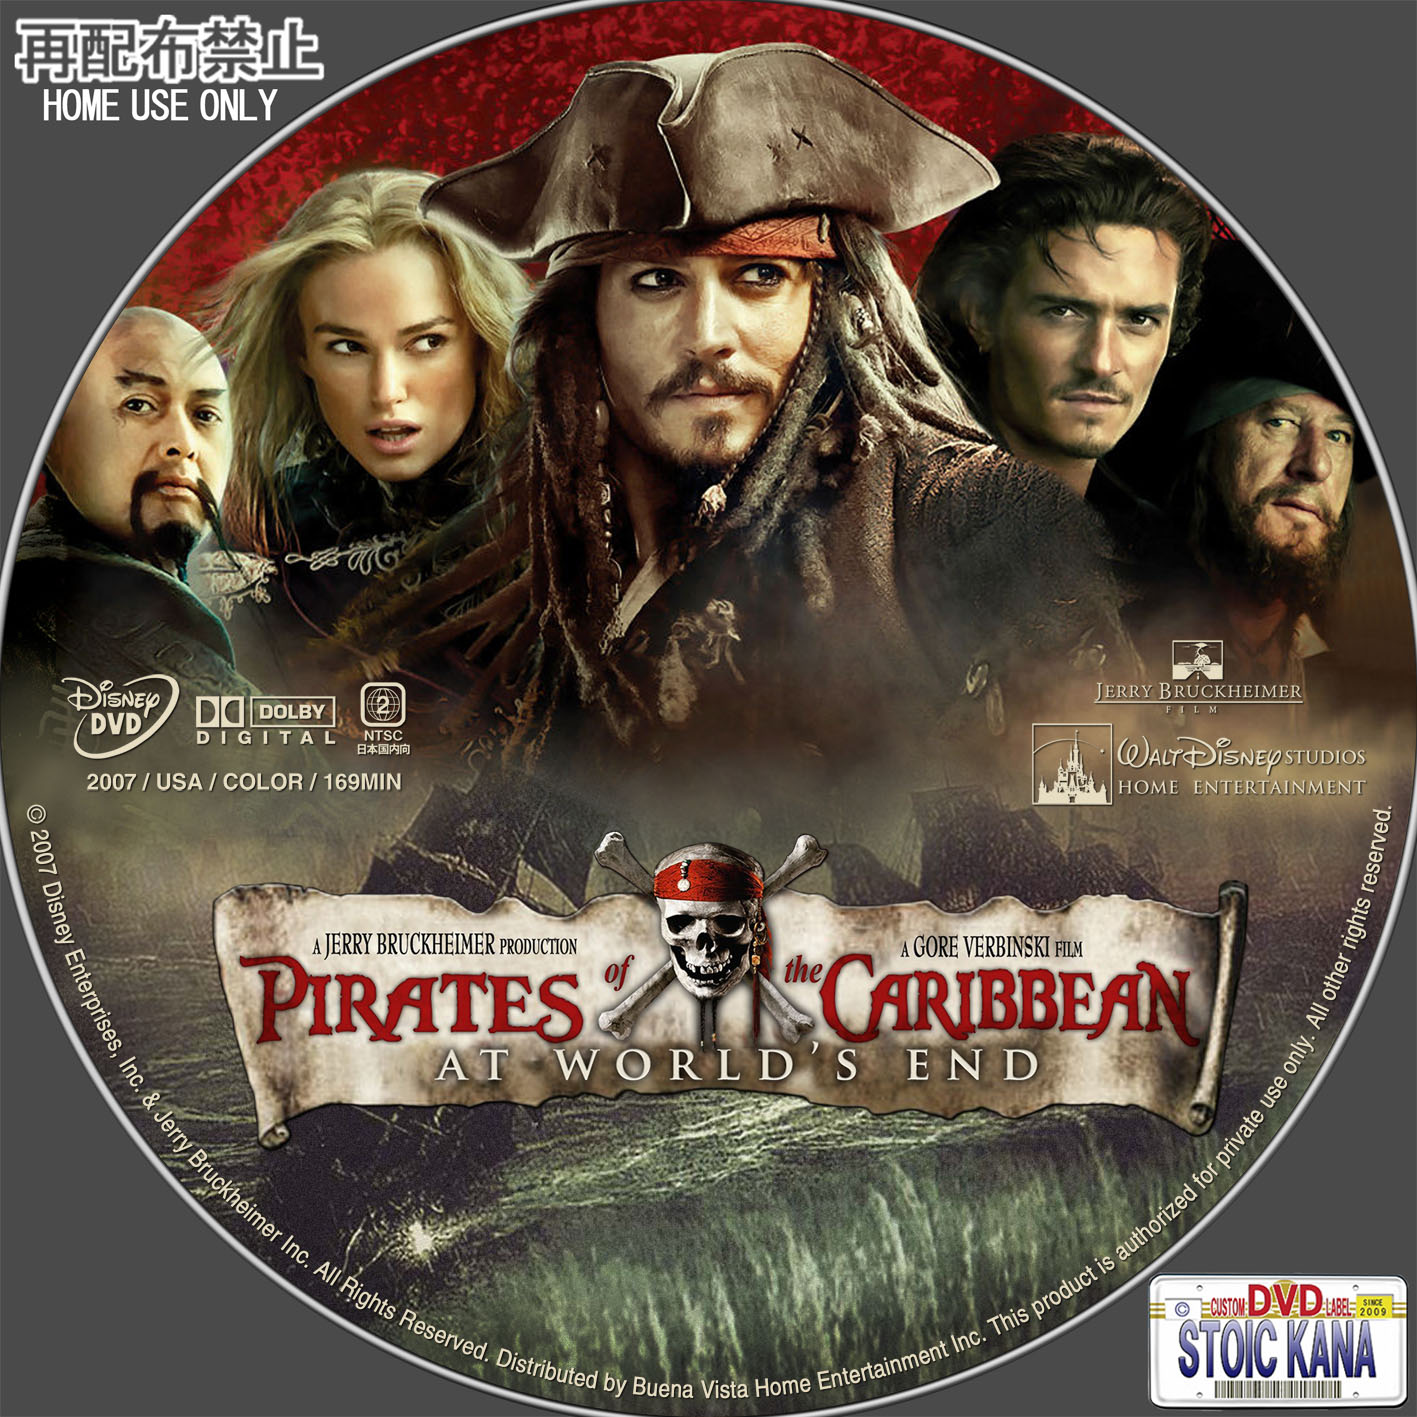 Pirates of the caribbean fakeporn naked clips